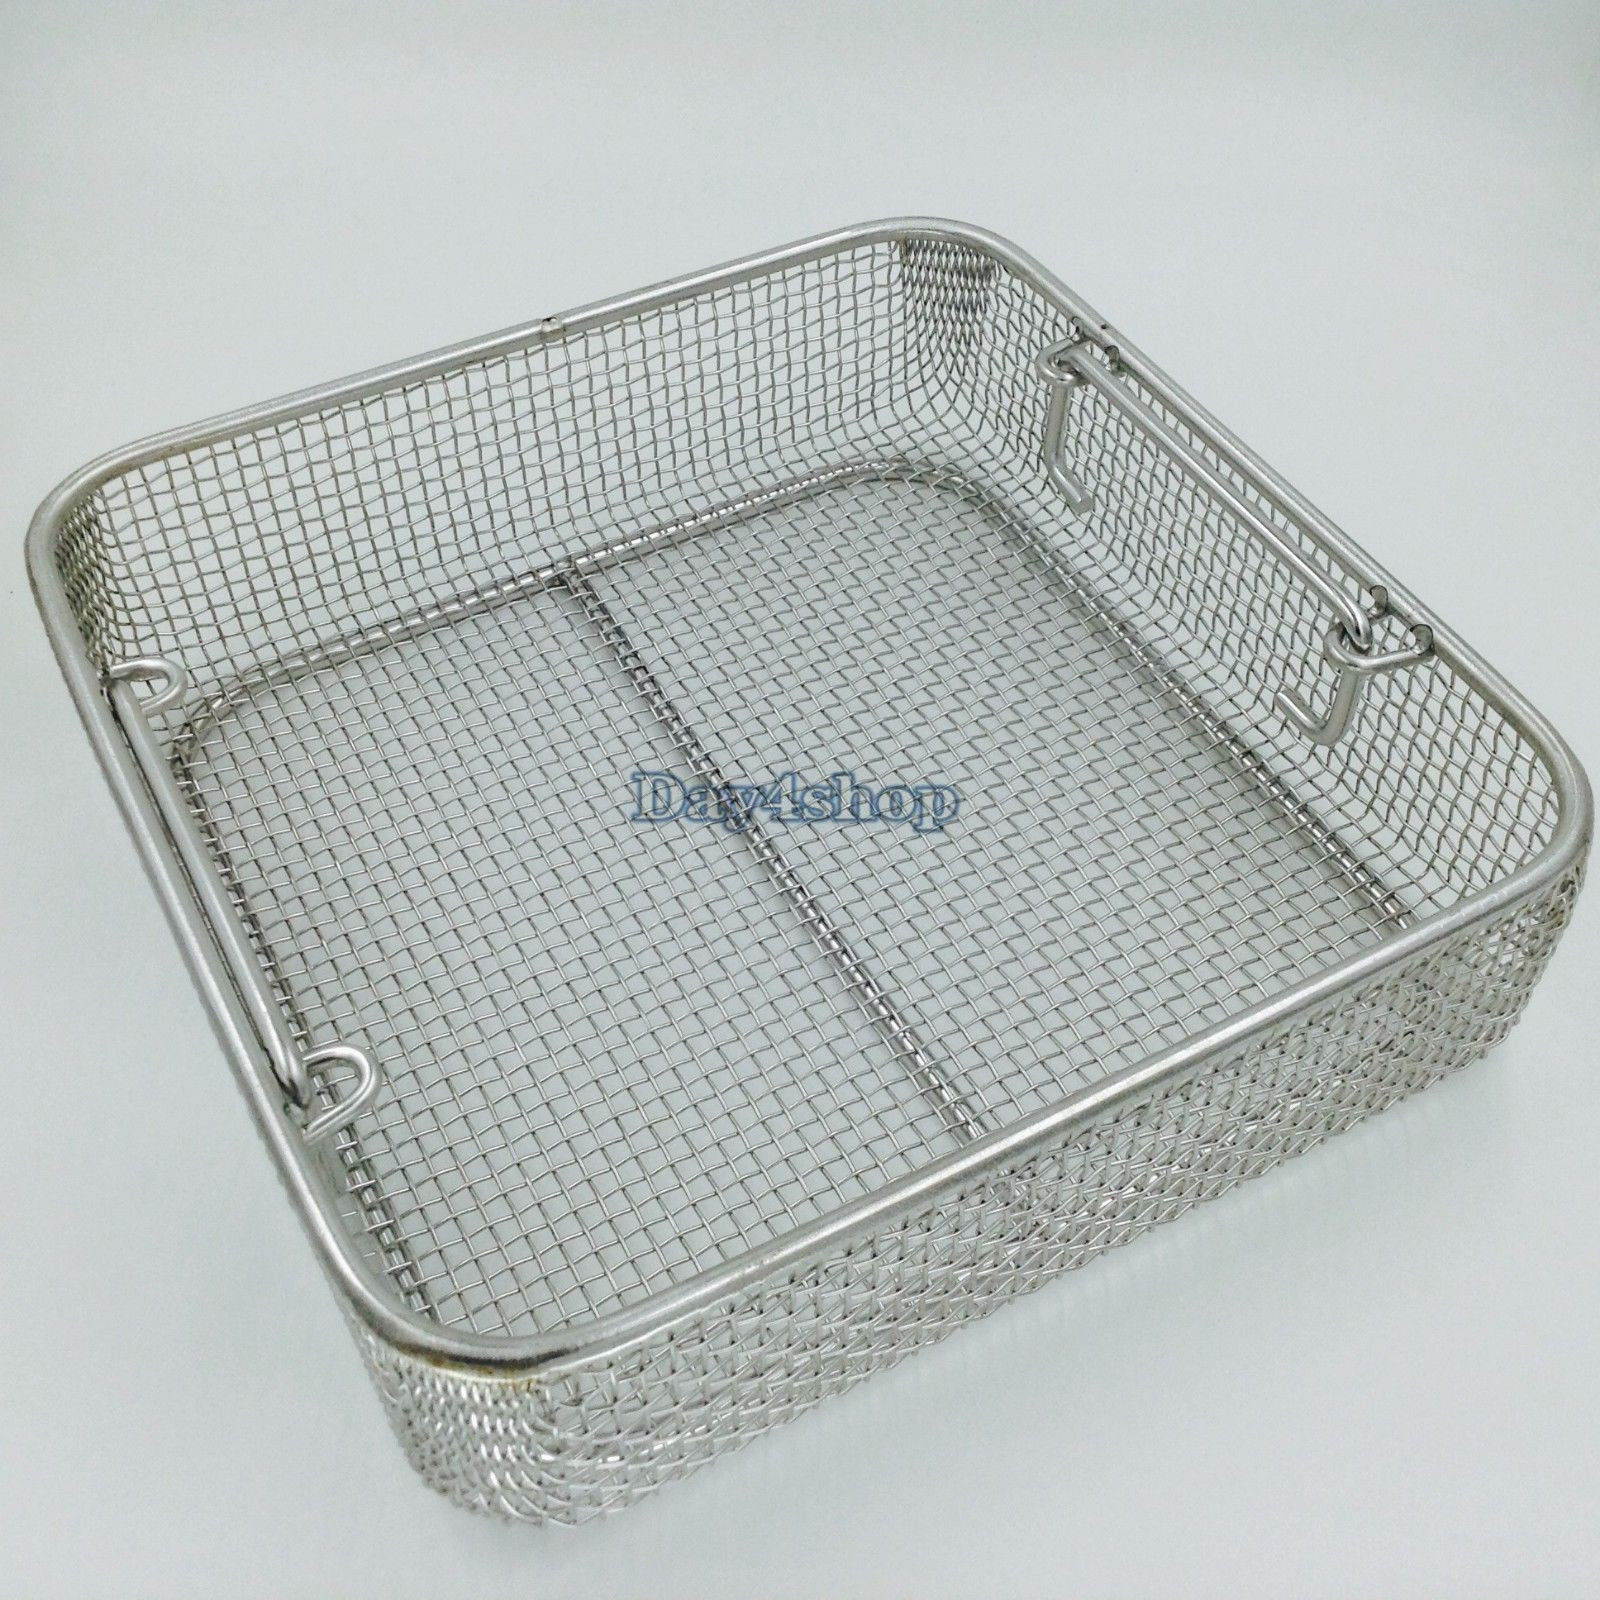 где купить New Stainless steel sterilization tray case box surgical instrument tool по лучшей цене